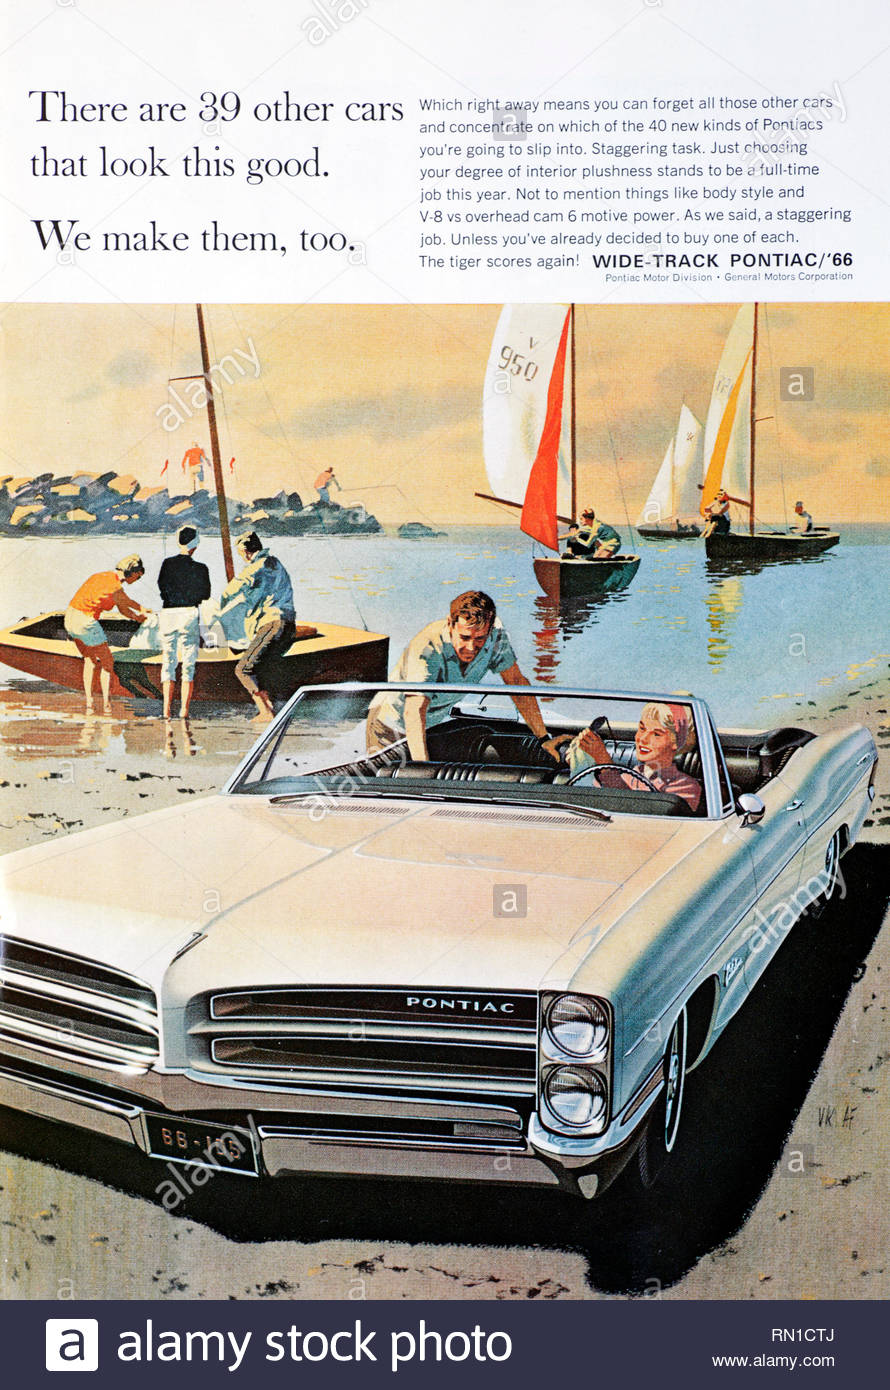 Vintage advertising for the Pontiac Wide track Car 1966 - Stock Image